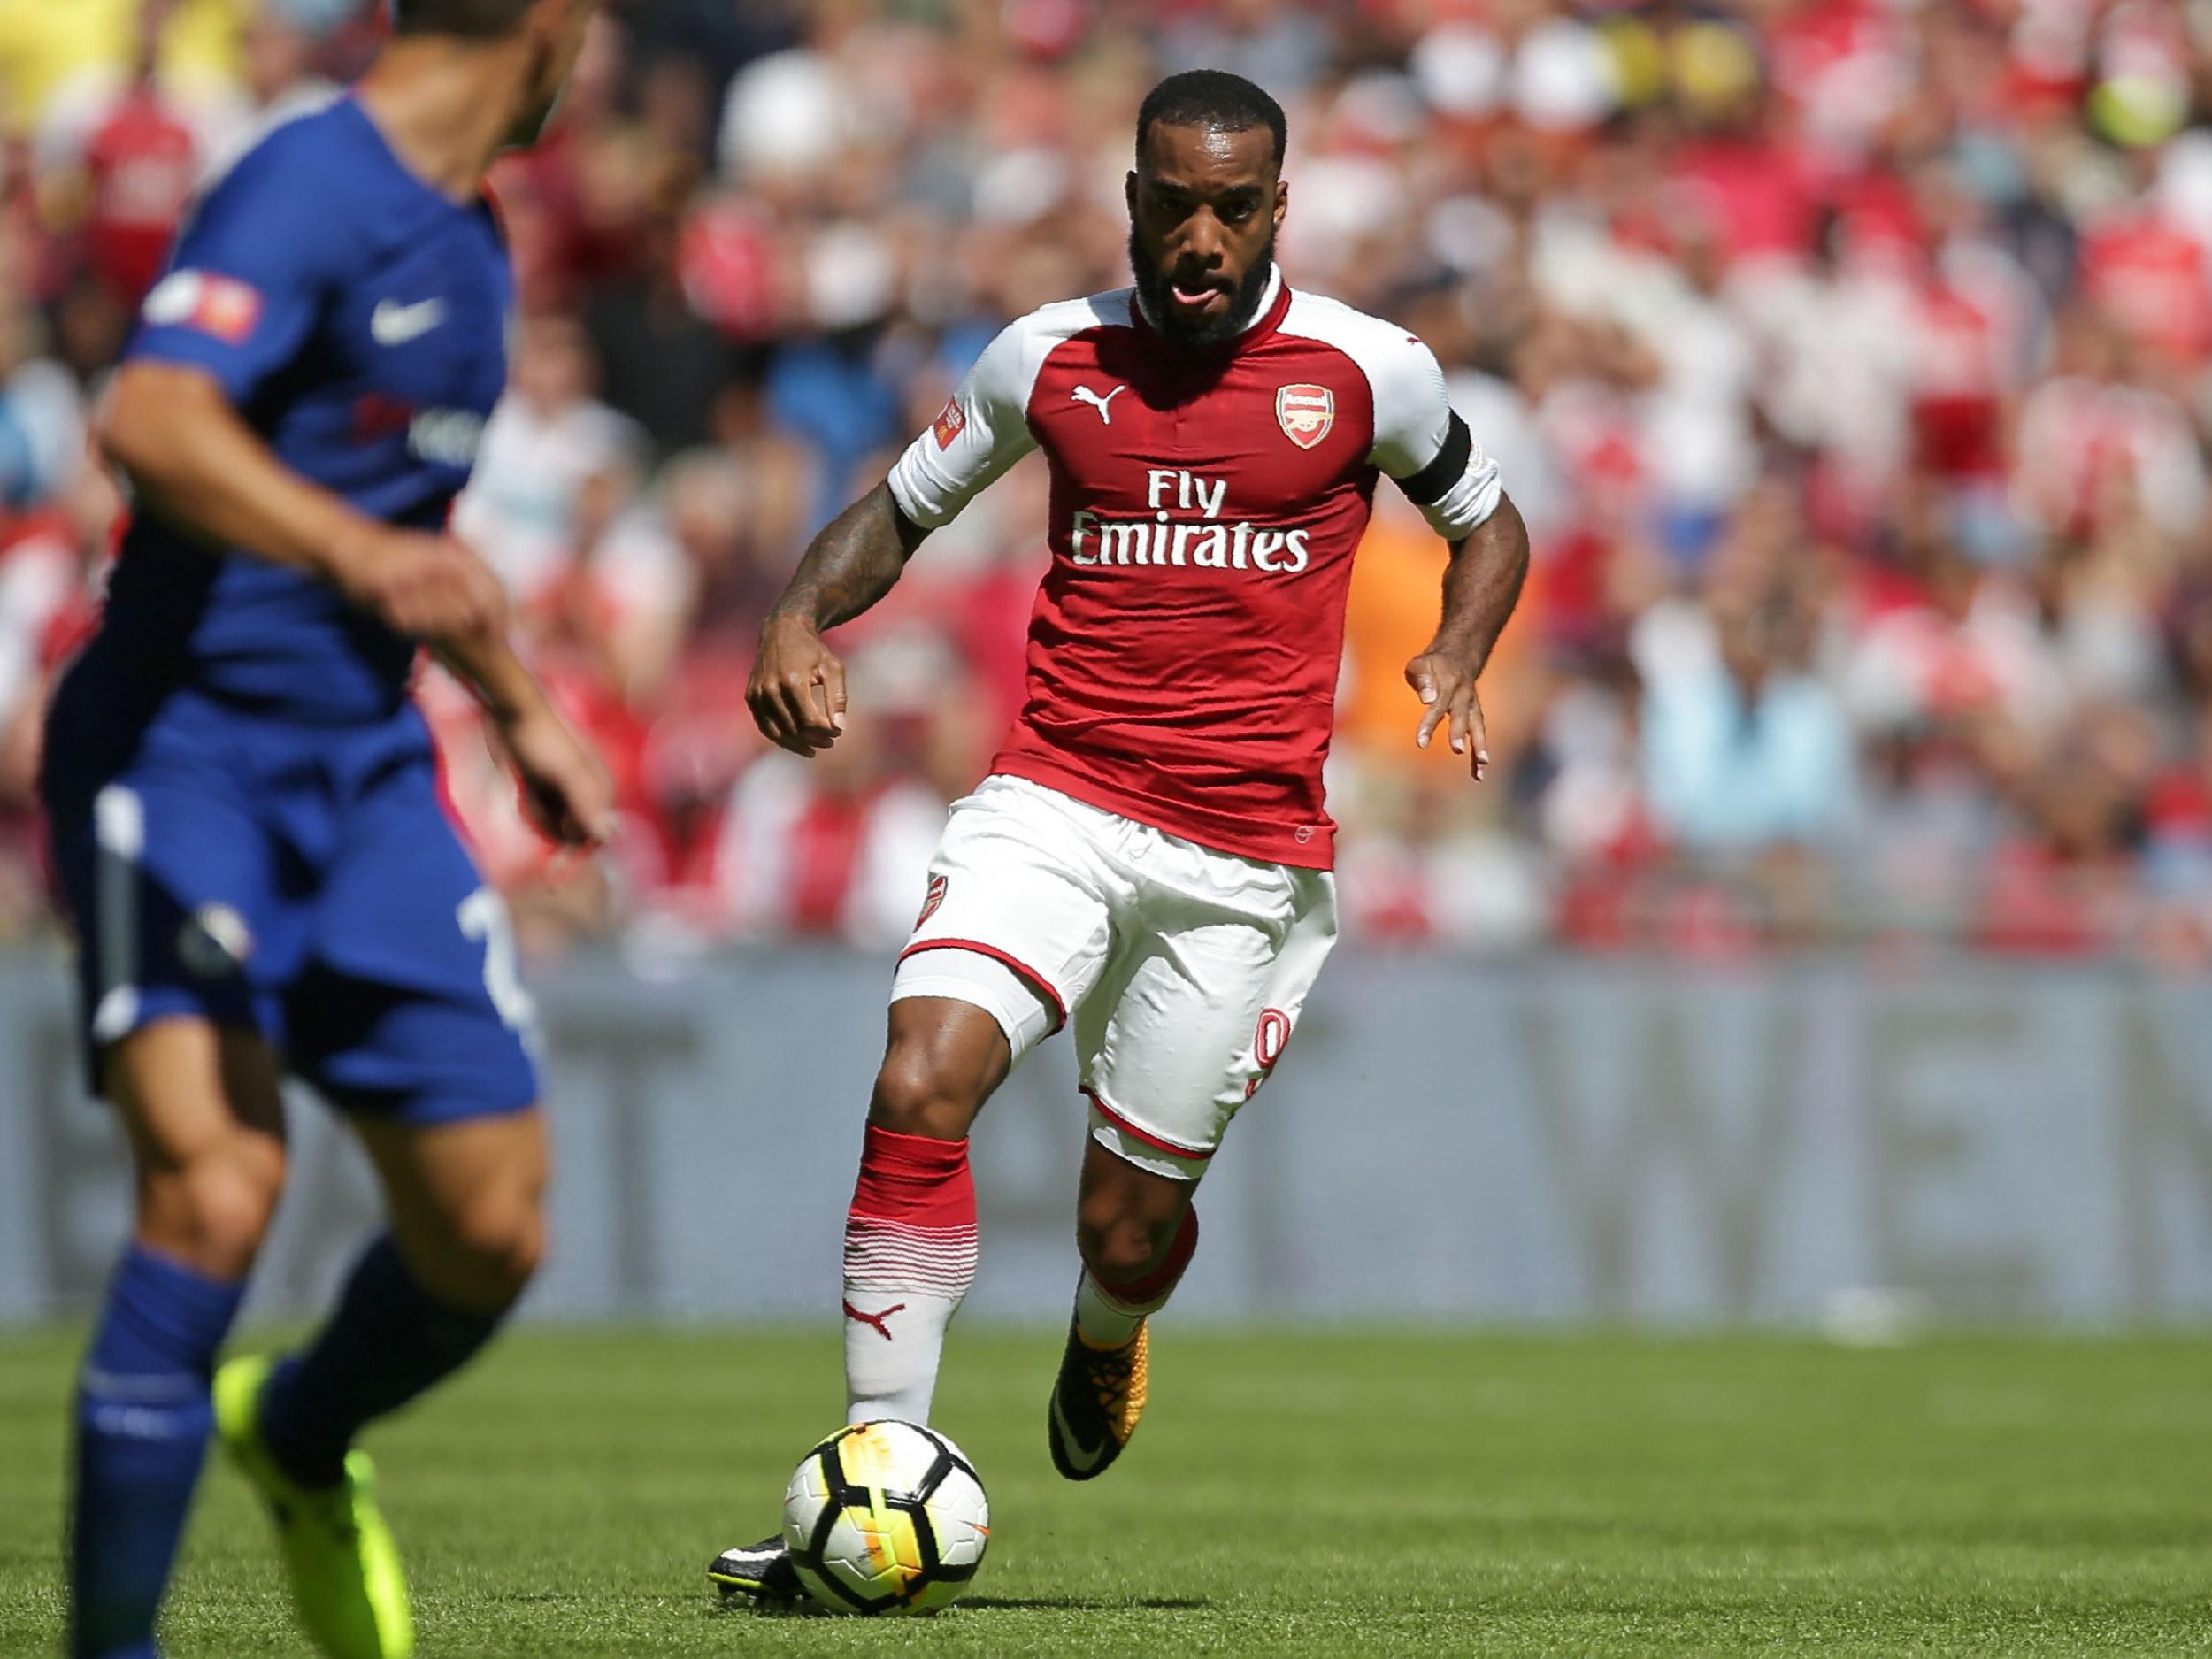 Arsene Wenger challenges Arsenal new boy Alexandre Lacazette to